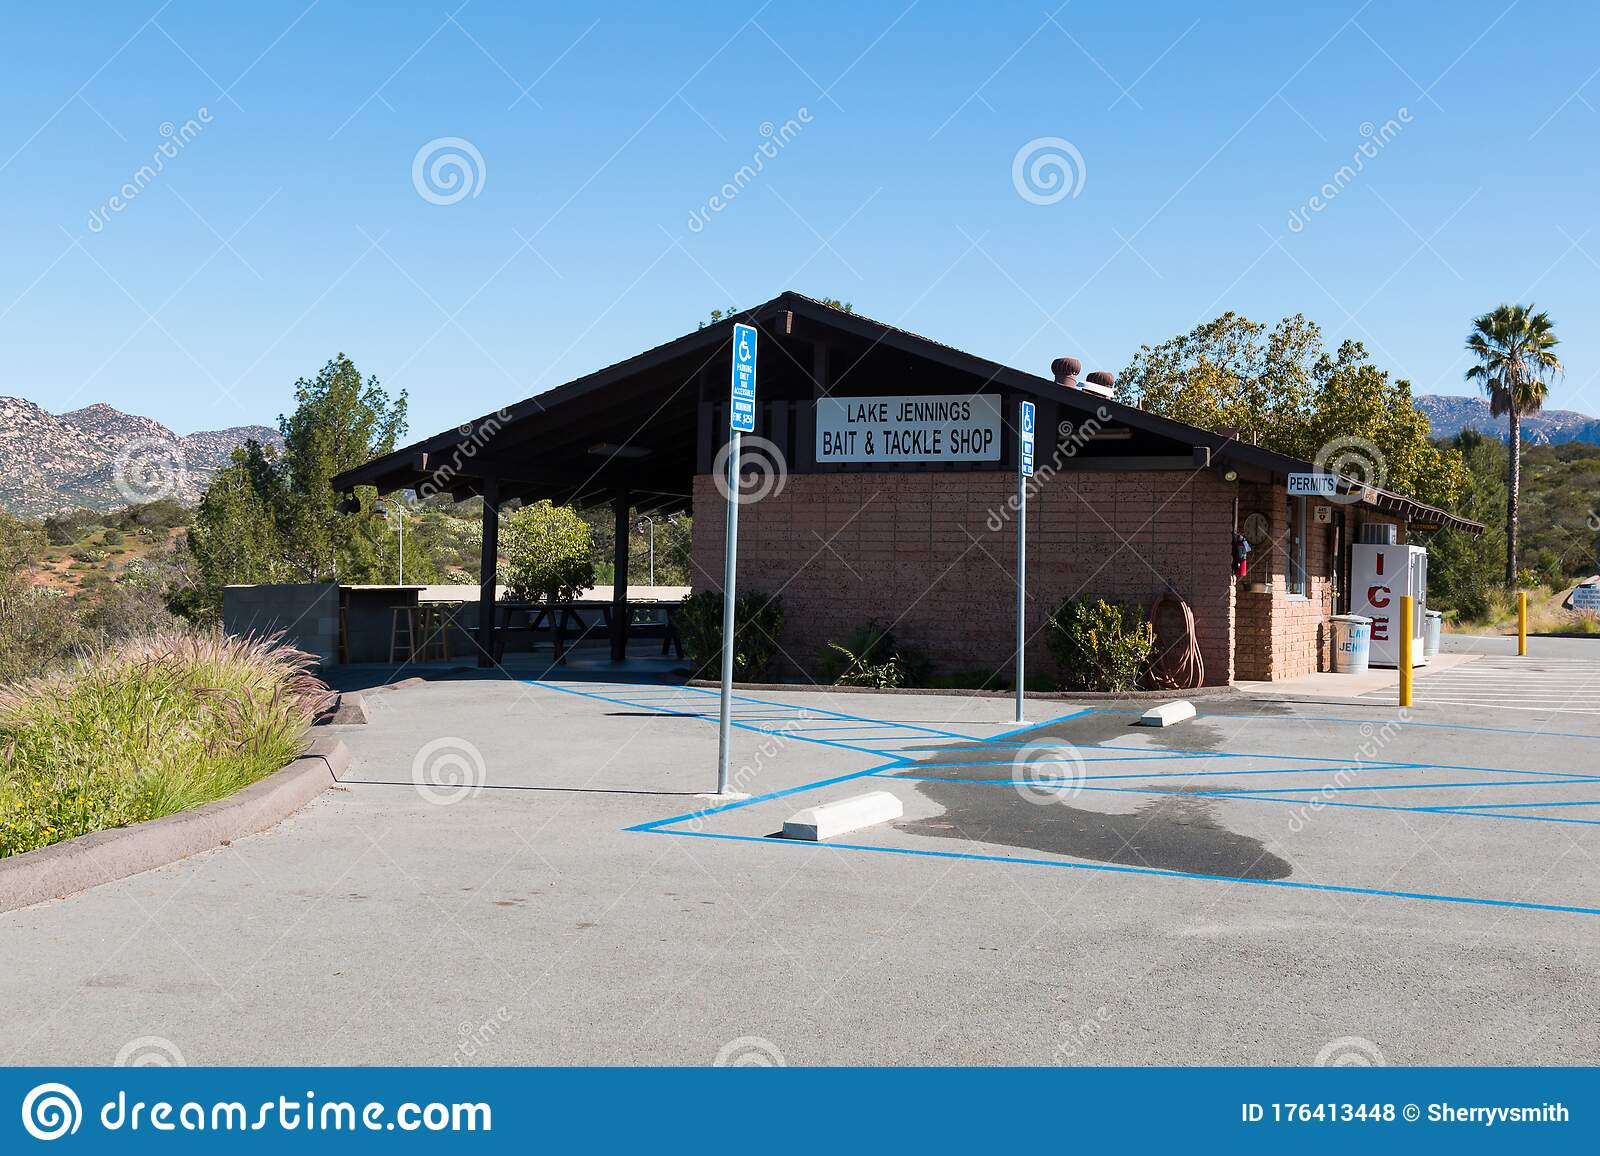 Bait And Tackle Shop At Lake Jennings In San Diego County ...